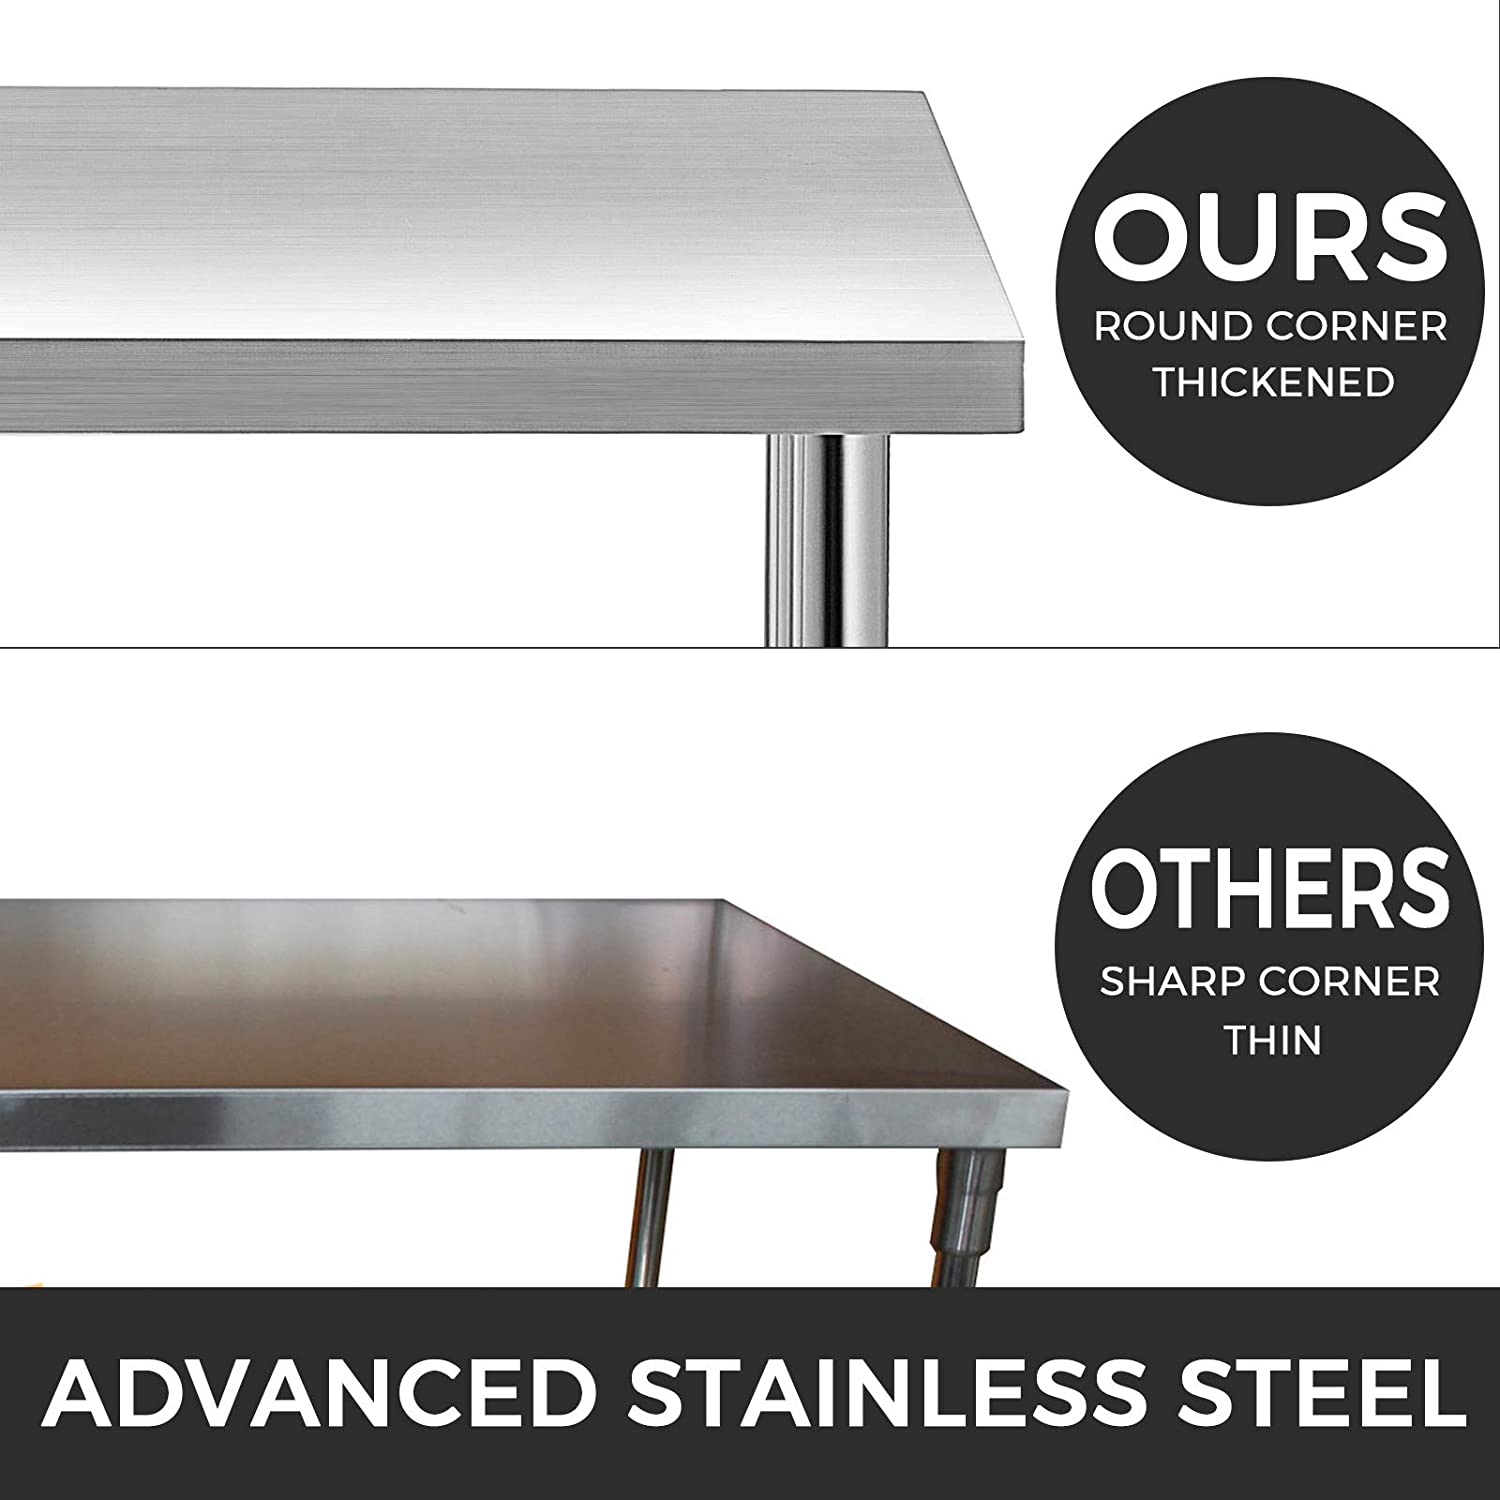 KITGARN Stainless Steel Catering Work Table 30x12 Inch with 4 Wheels Commercial Food Prep Workbench With Flexible Adjustment Shelf For Kitchen Prep Table 30x18 Inch